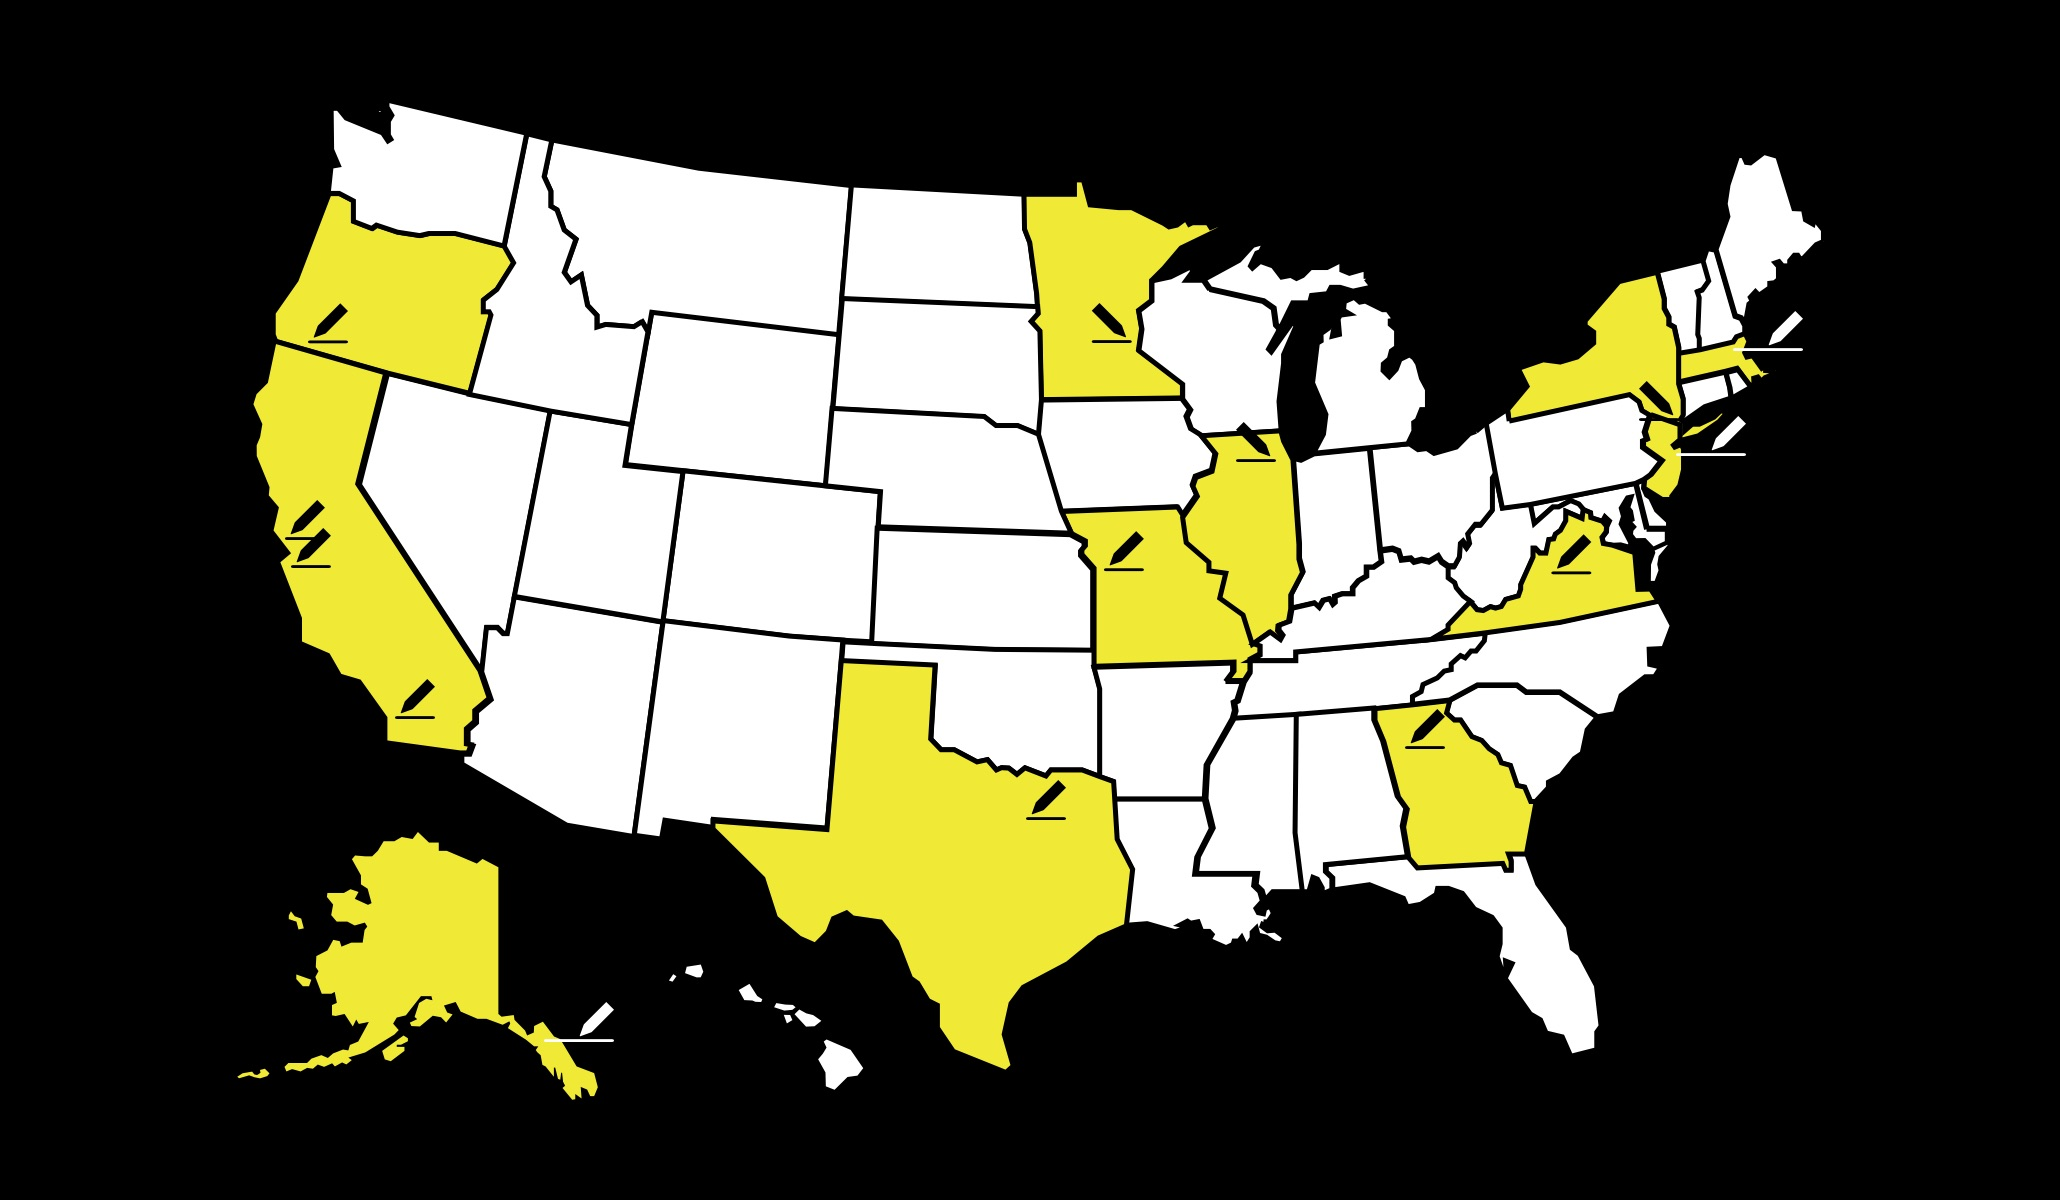 a map of locations across the US where the playwright residencies take place.